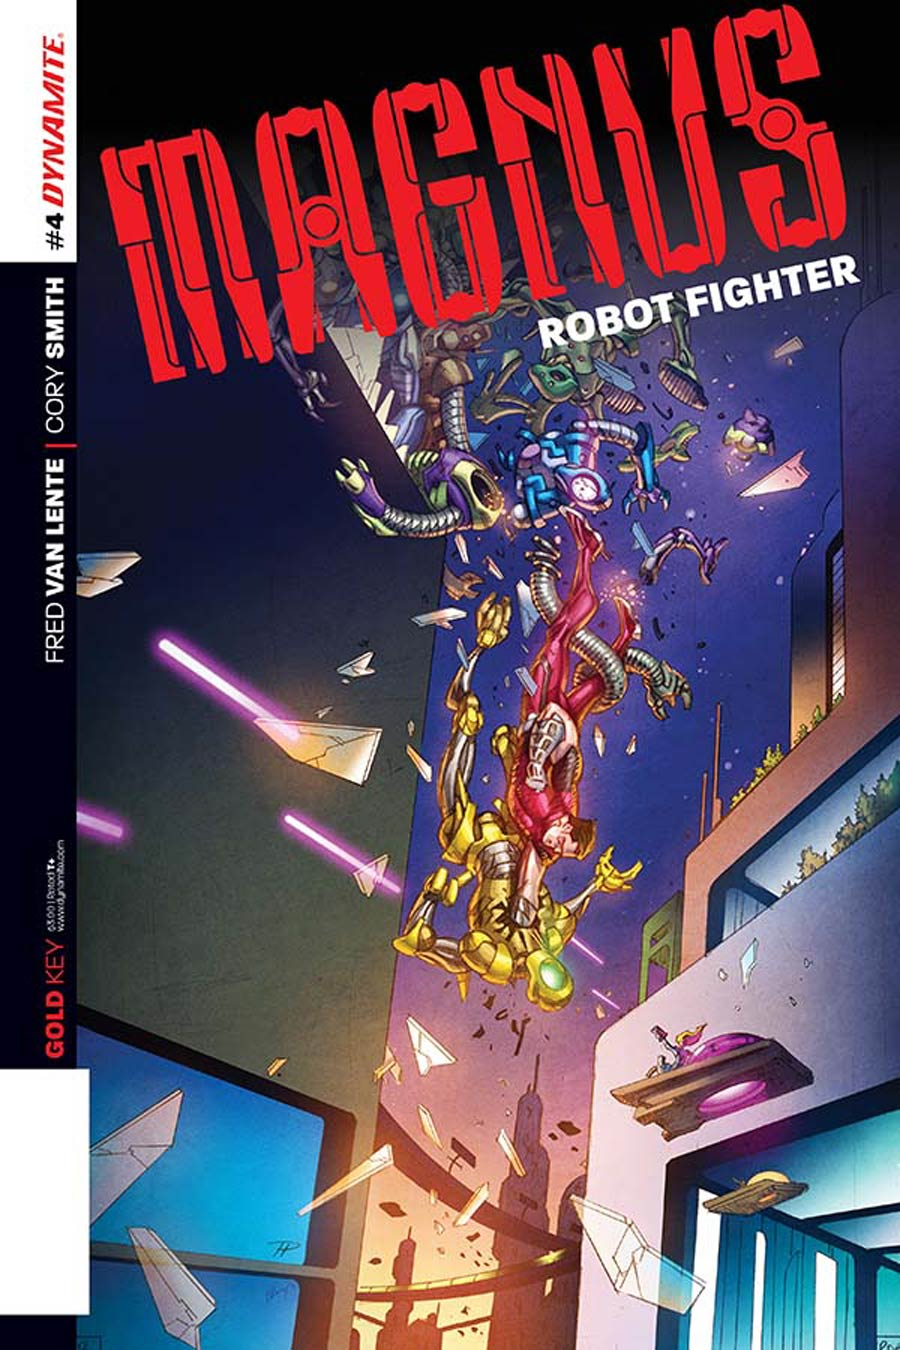 Magnus Robot Fighter Vol 4 #4 Cover B Variant Phil Hester Subscription Cover